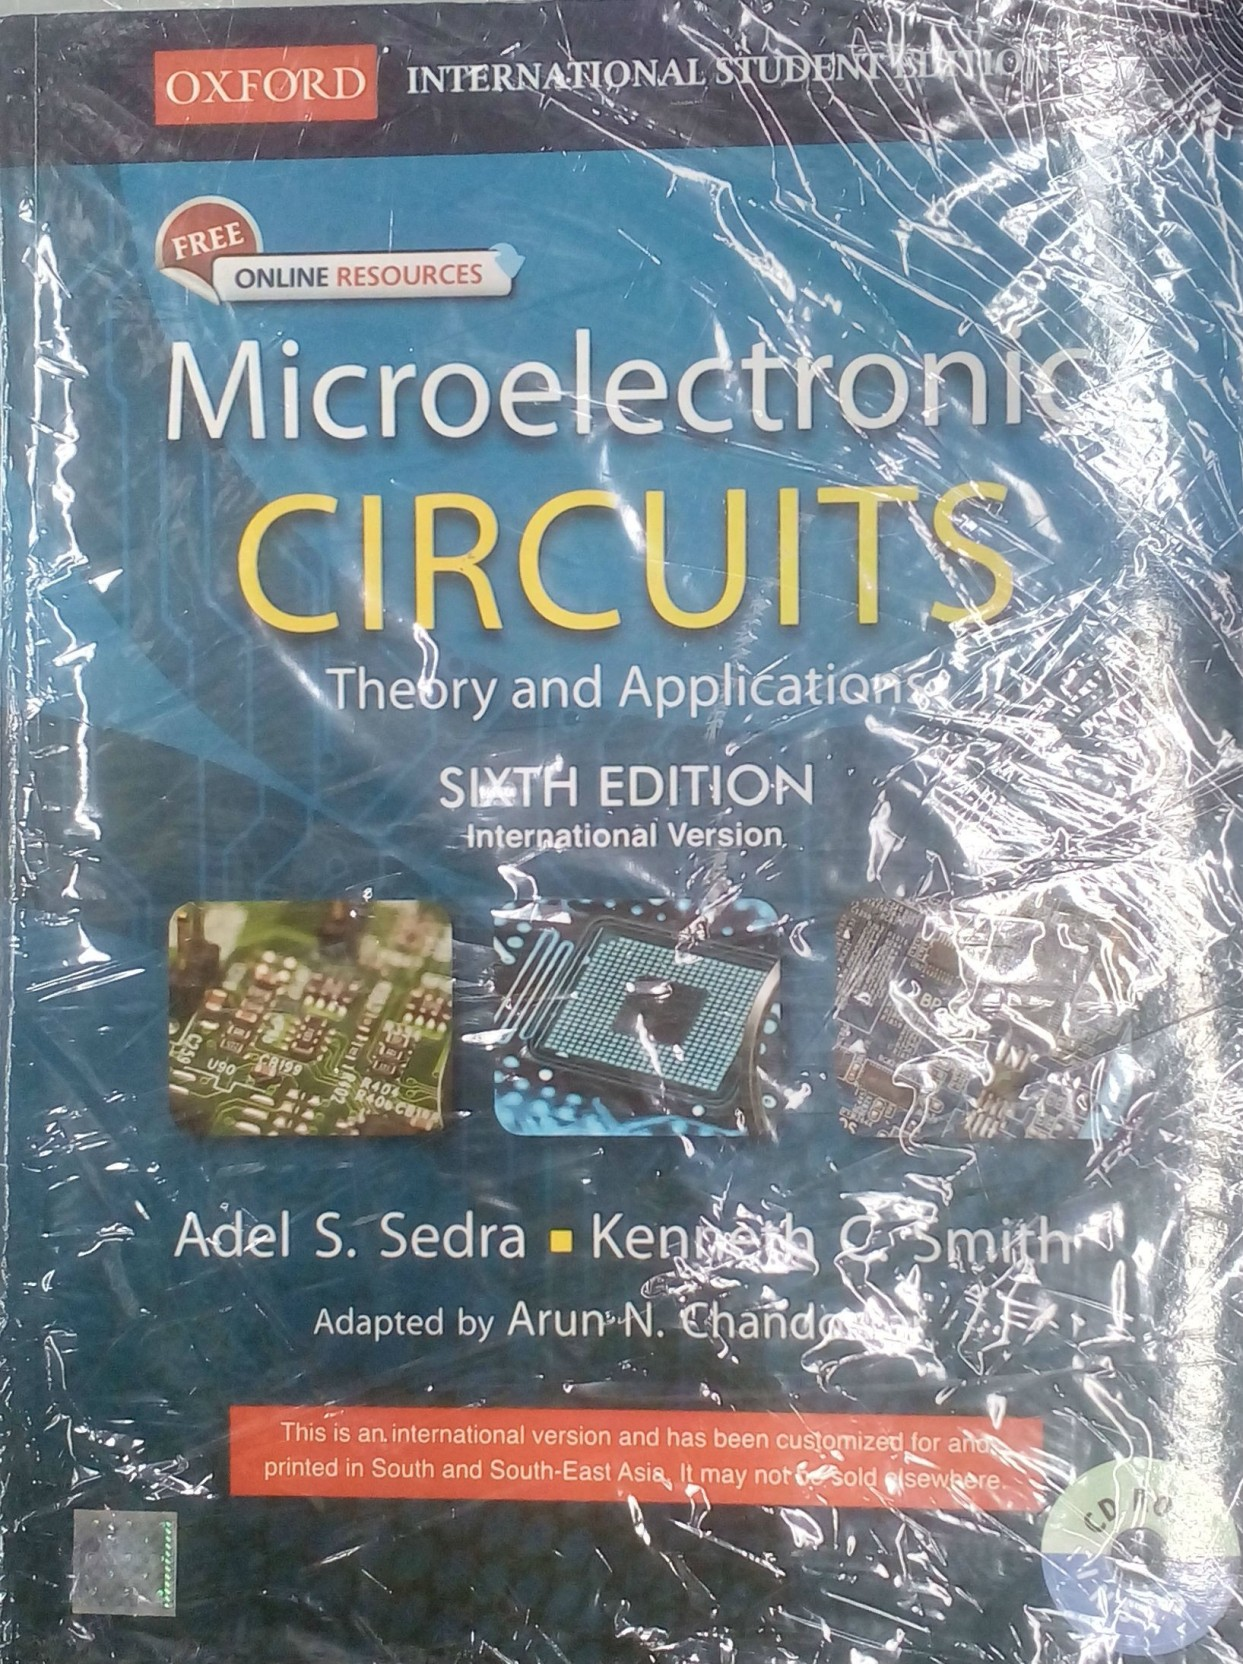 Microelectronic Circuits: Theory and Applications 6th Edition. ADD TO CART